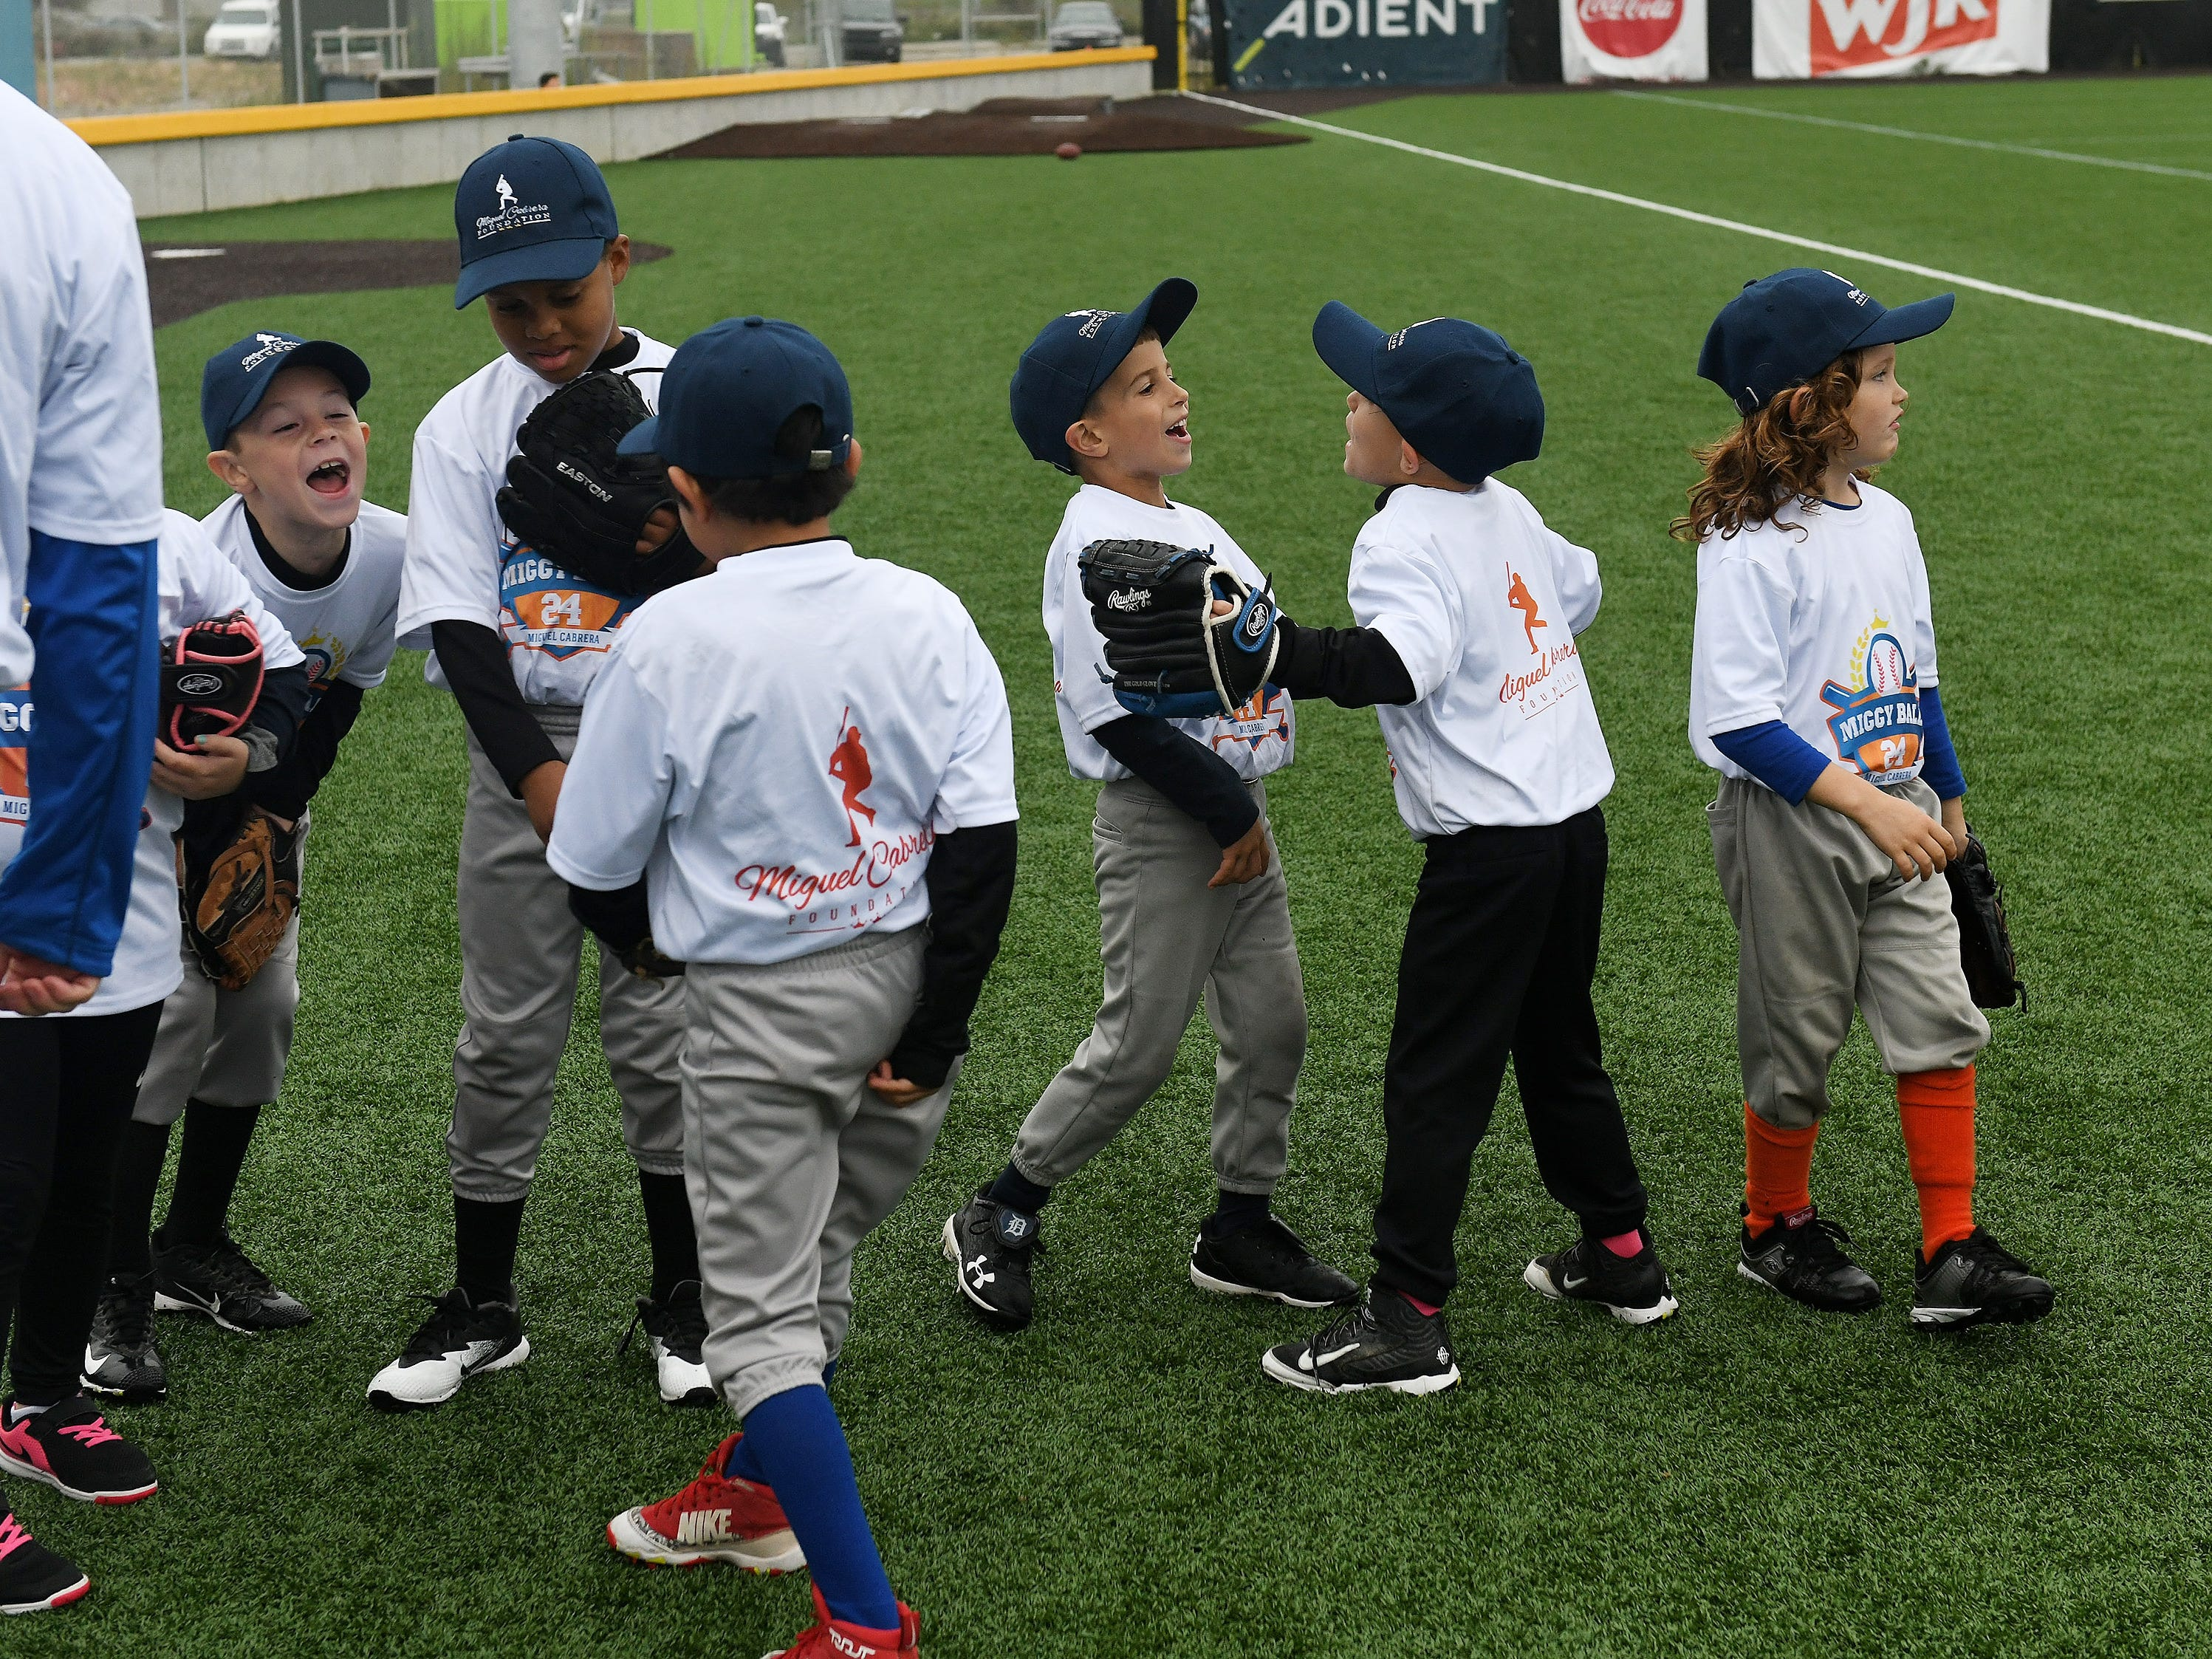 Kids joke around while they wait their turn to perform skills at the Miggy Ball 24 event at The Corner Ballpark in Detroit on Oct 1, 2018. From right, Isaac Gourley, 6, of Detroit, Jackson McMahon, 5, and Evan Walter. Miggy Ball 24 is a recreation format where kids participate in five baseball skills.